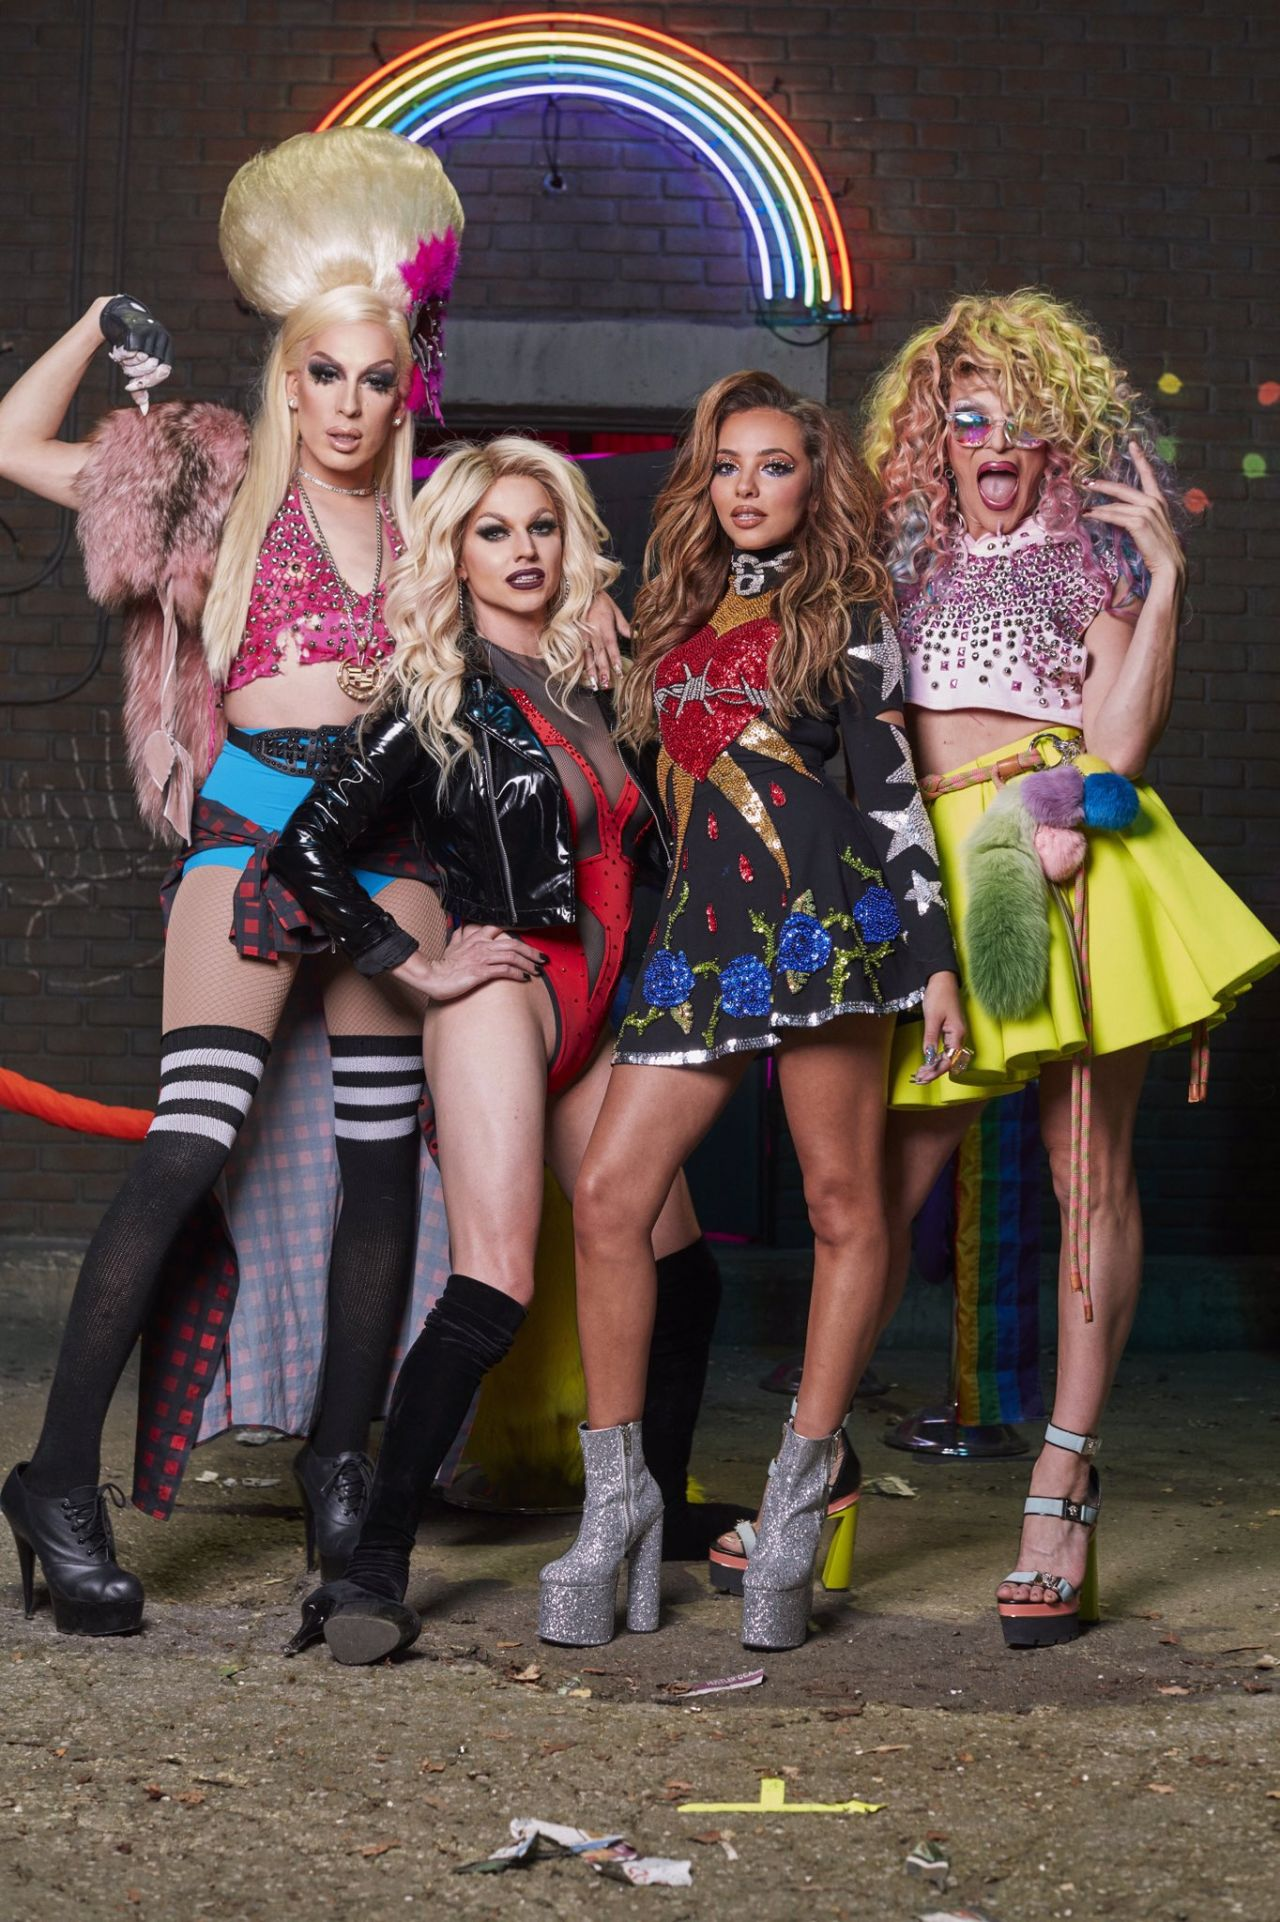 Little Mix are a British girl group formed in 2011 during the eighth series of the UK version of The X Factor They were the first group to win the competition and